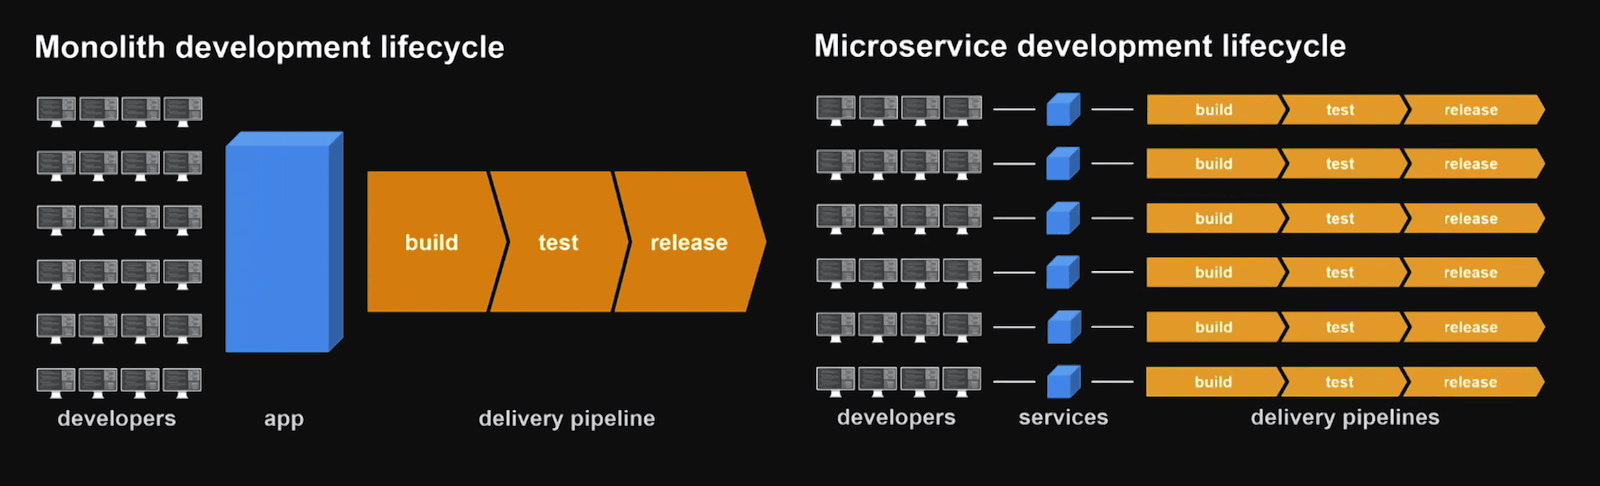 Amazon embraced microservices architecture to shorten the development lifecycle